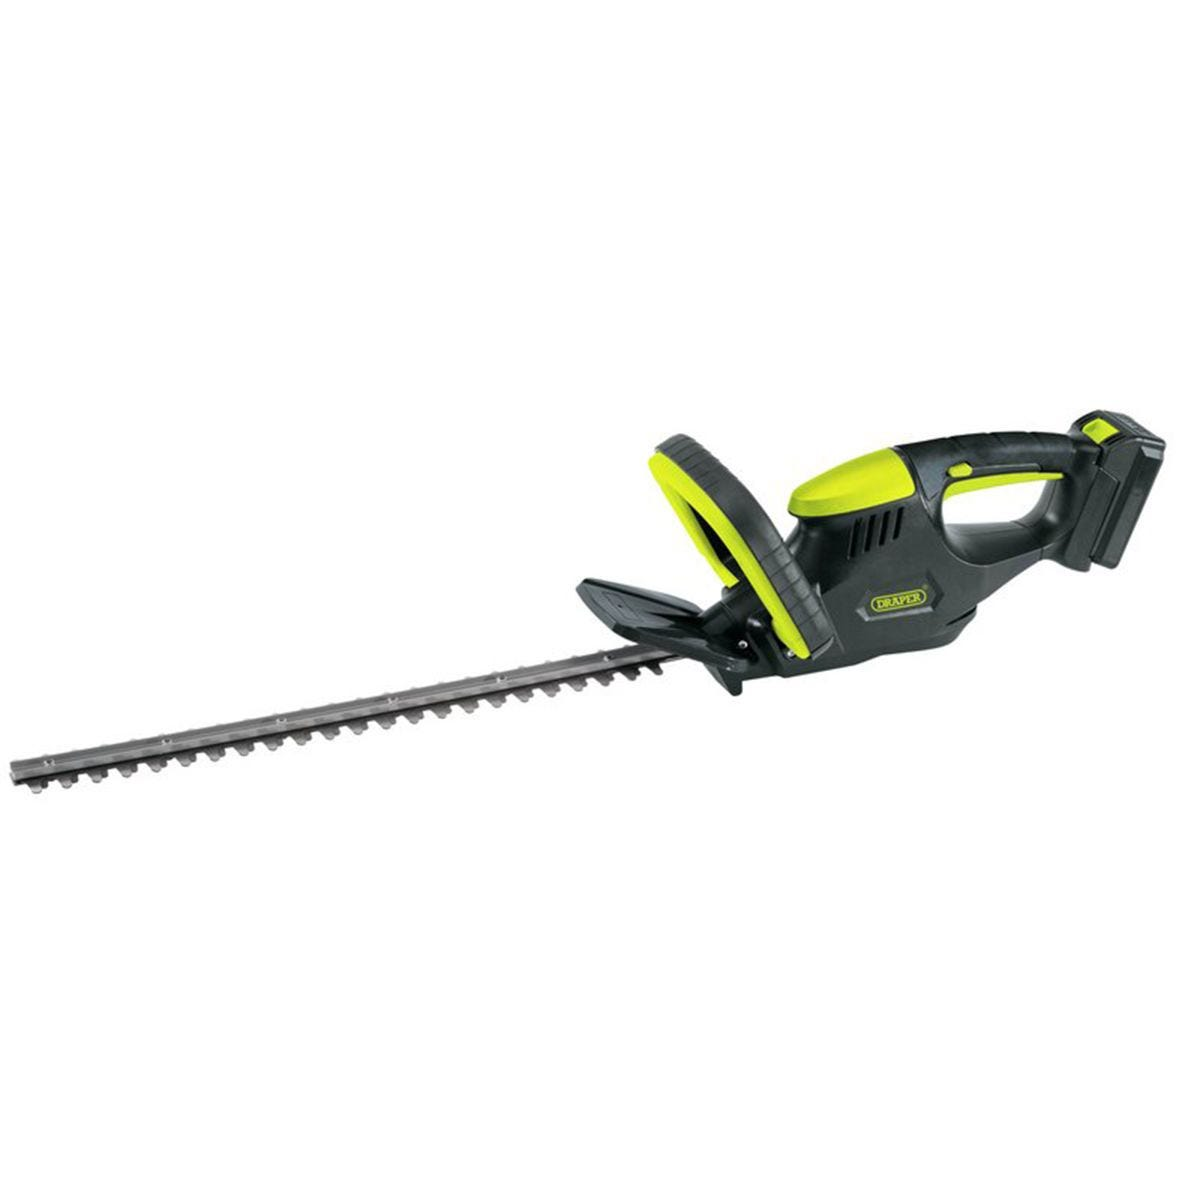 Draper 18V Cordless Li-ion Hedge Trimmer with 2.0Ah Lithium Battery and Charger